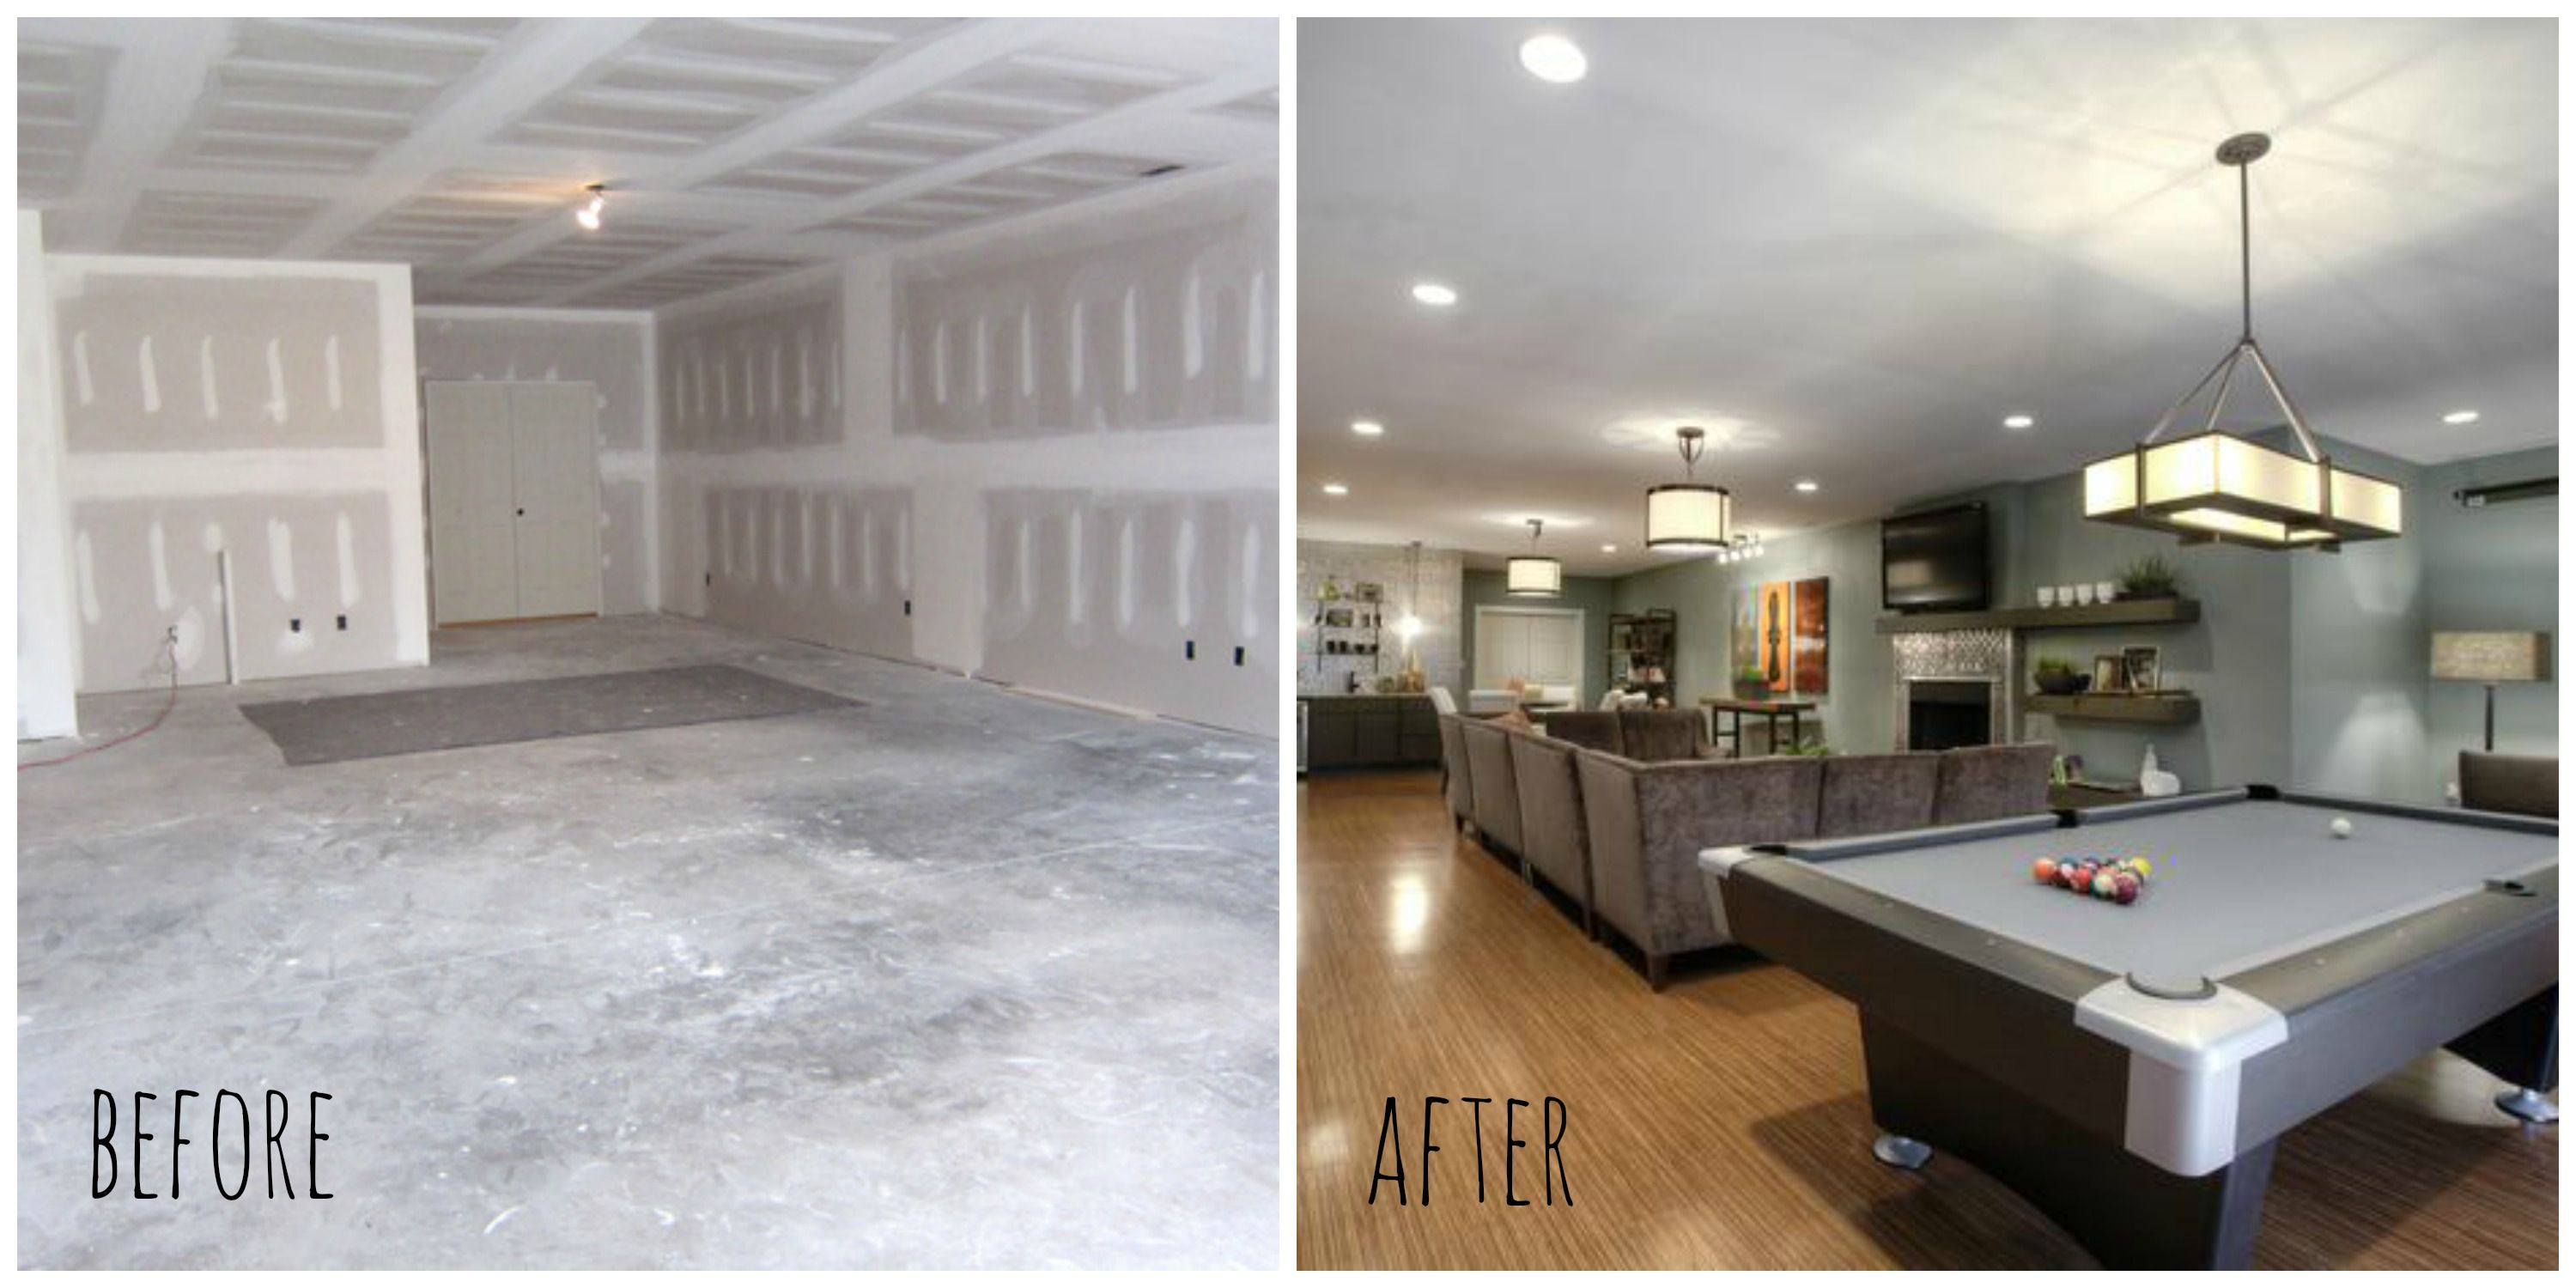 basement renovation before after before after pinterest basement renovations basements. Black Bedroom Furniture Sets. Home Design Ideas